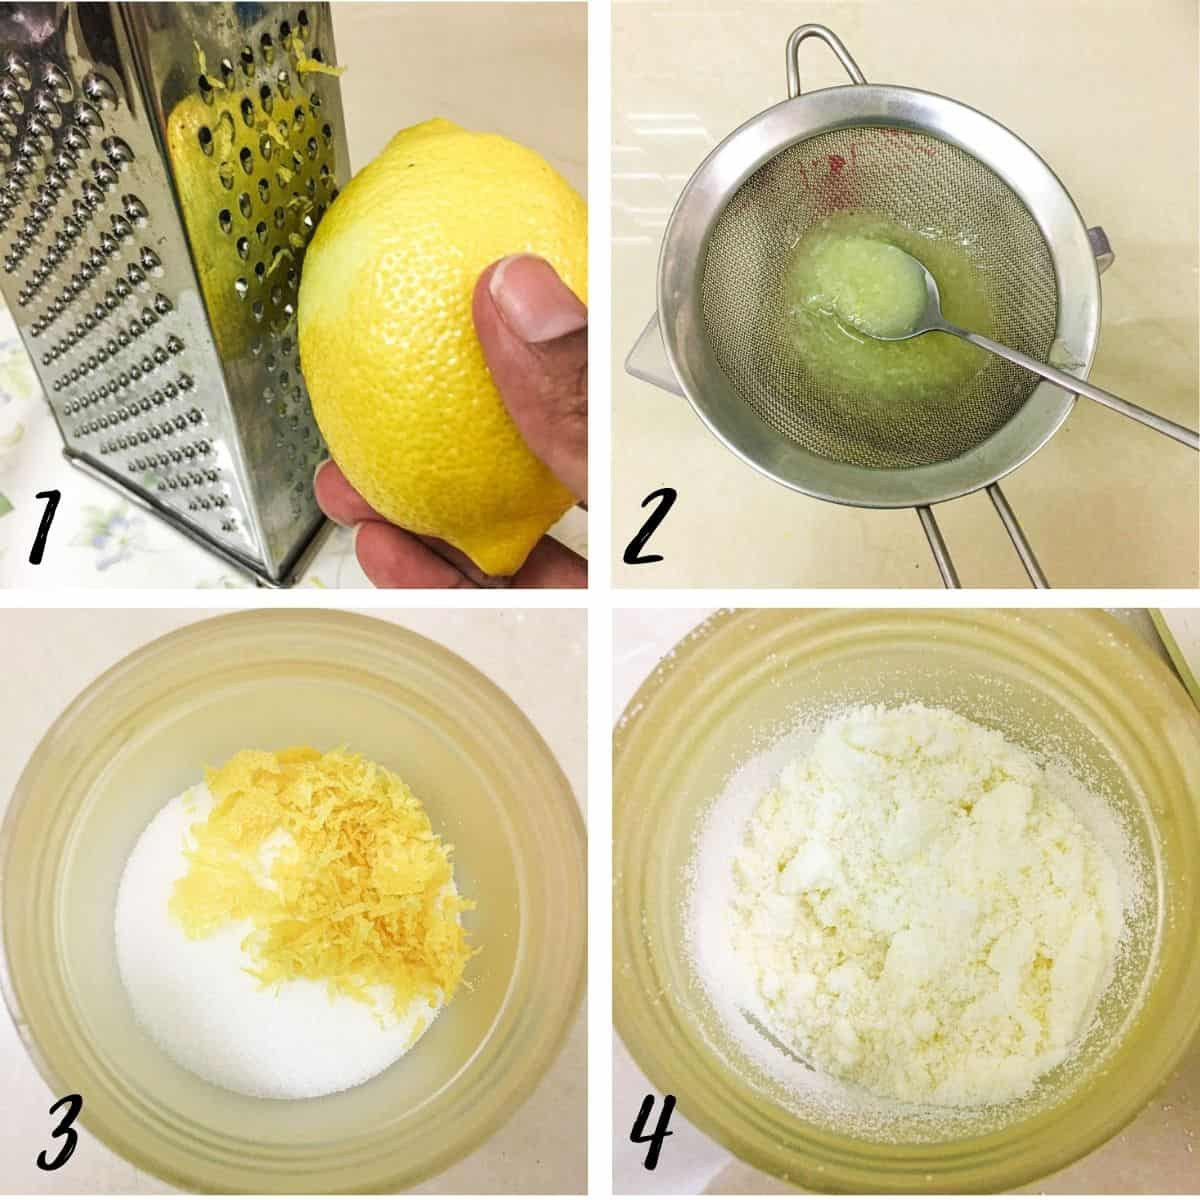 A poste with 4 images showing how to zest a lemon, strain the juice, and blend the zest with sugar.